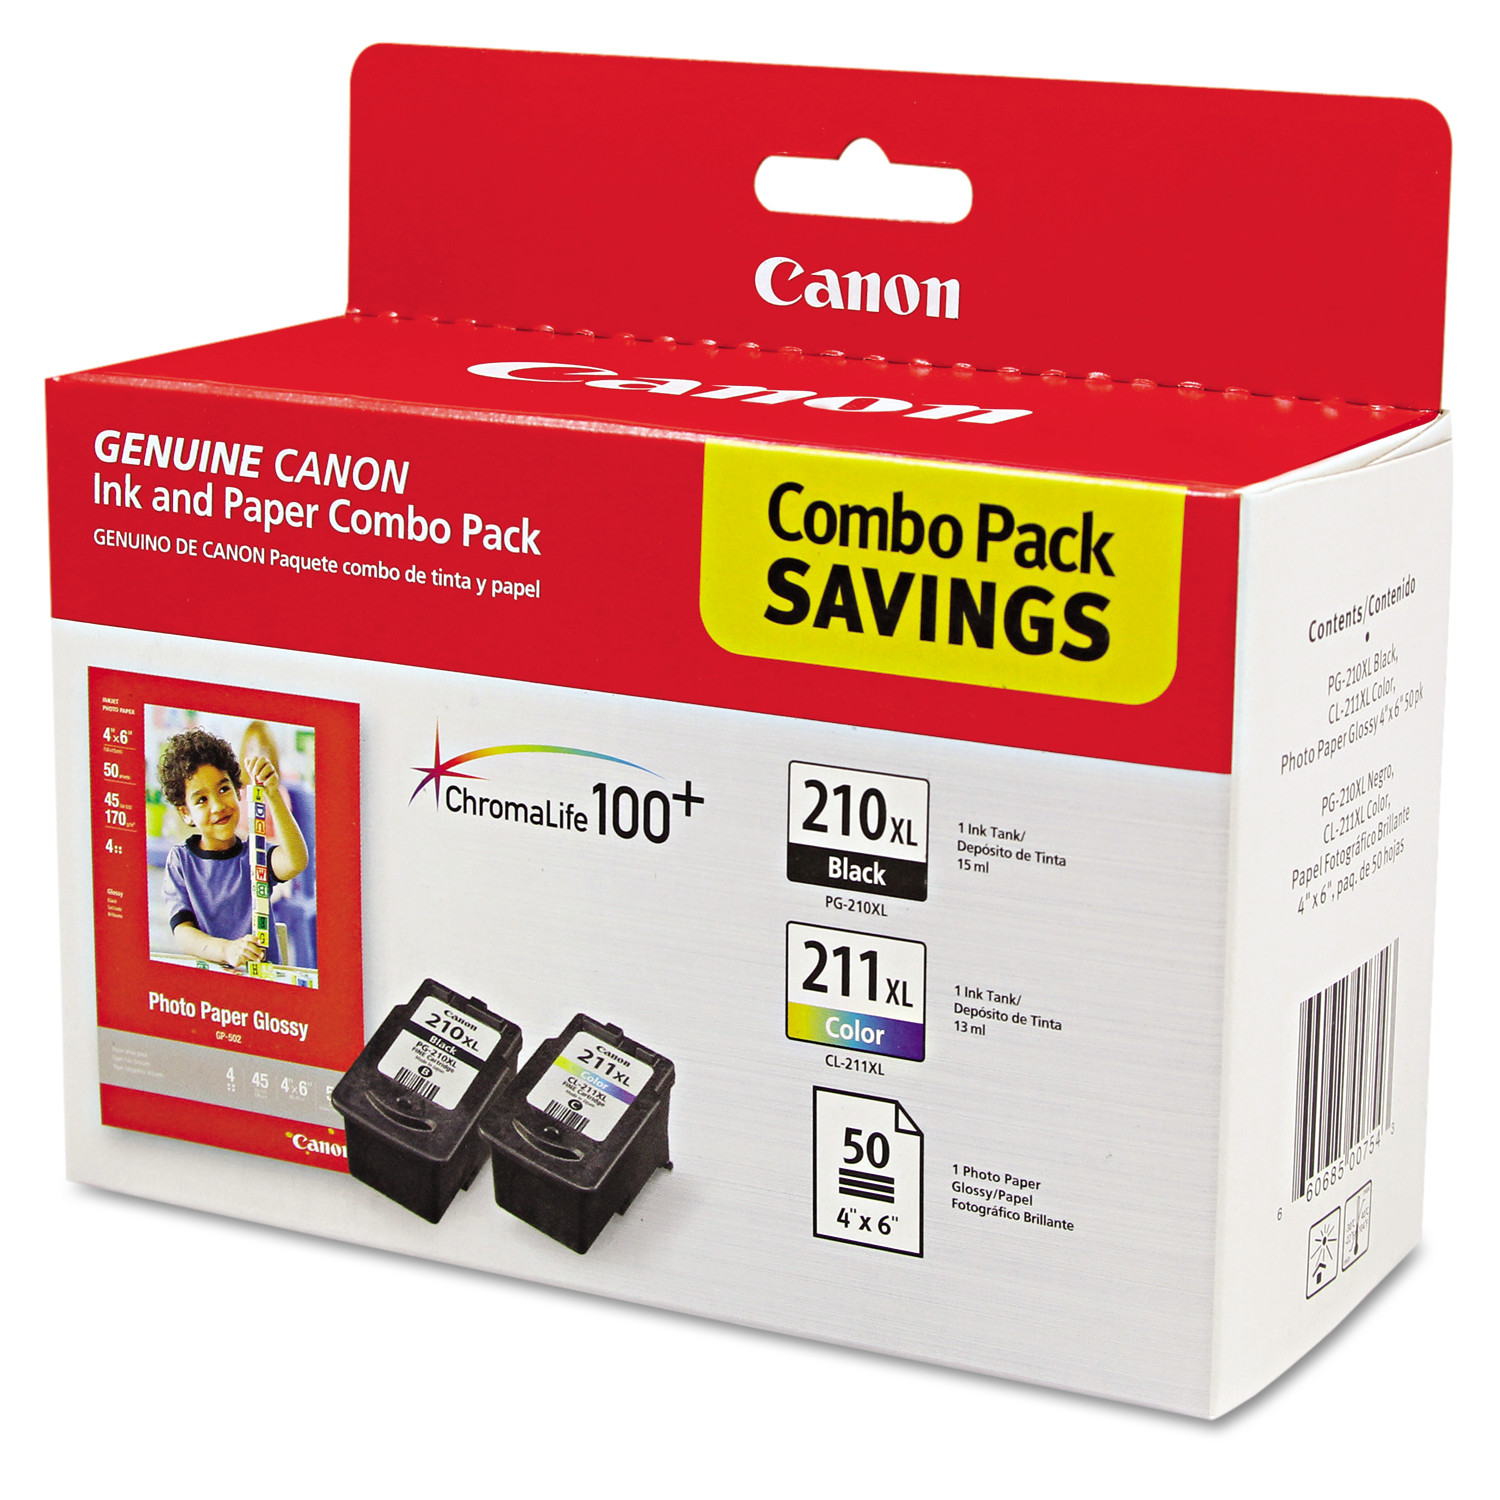 Canon 210Xl And 211Xl Ink Cartridges